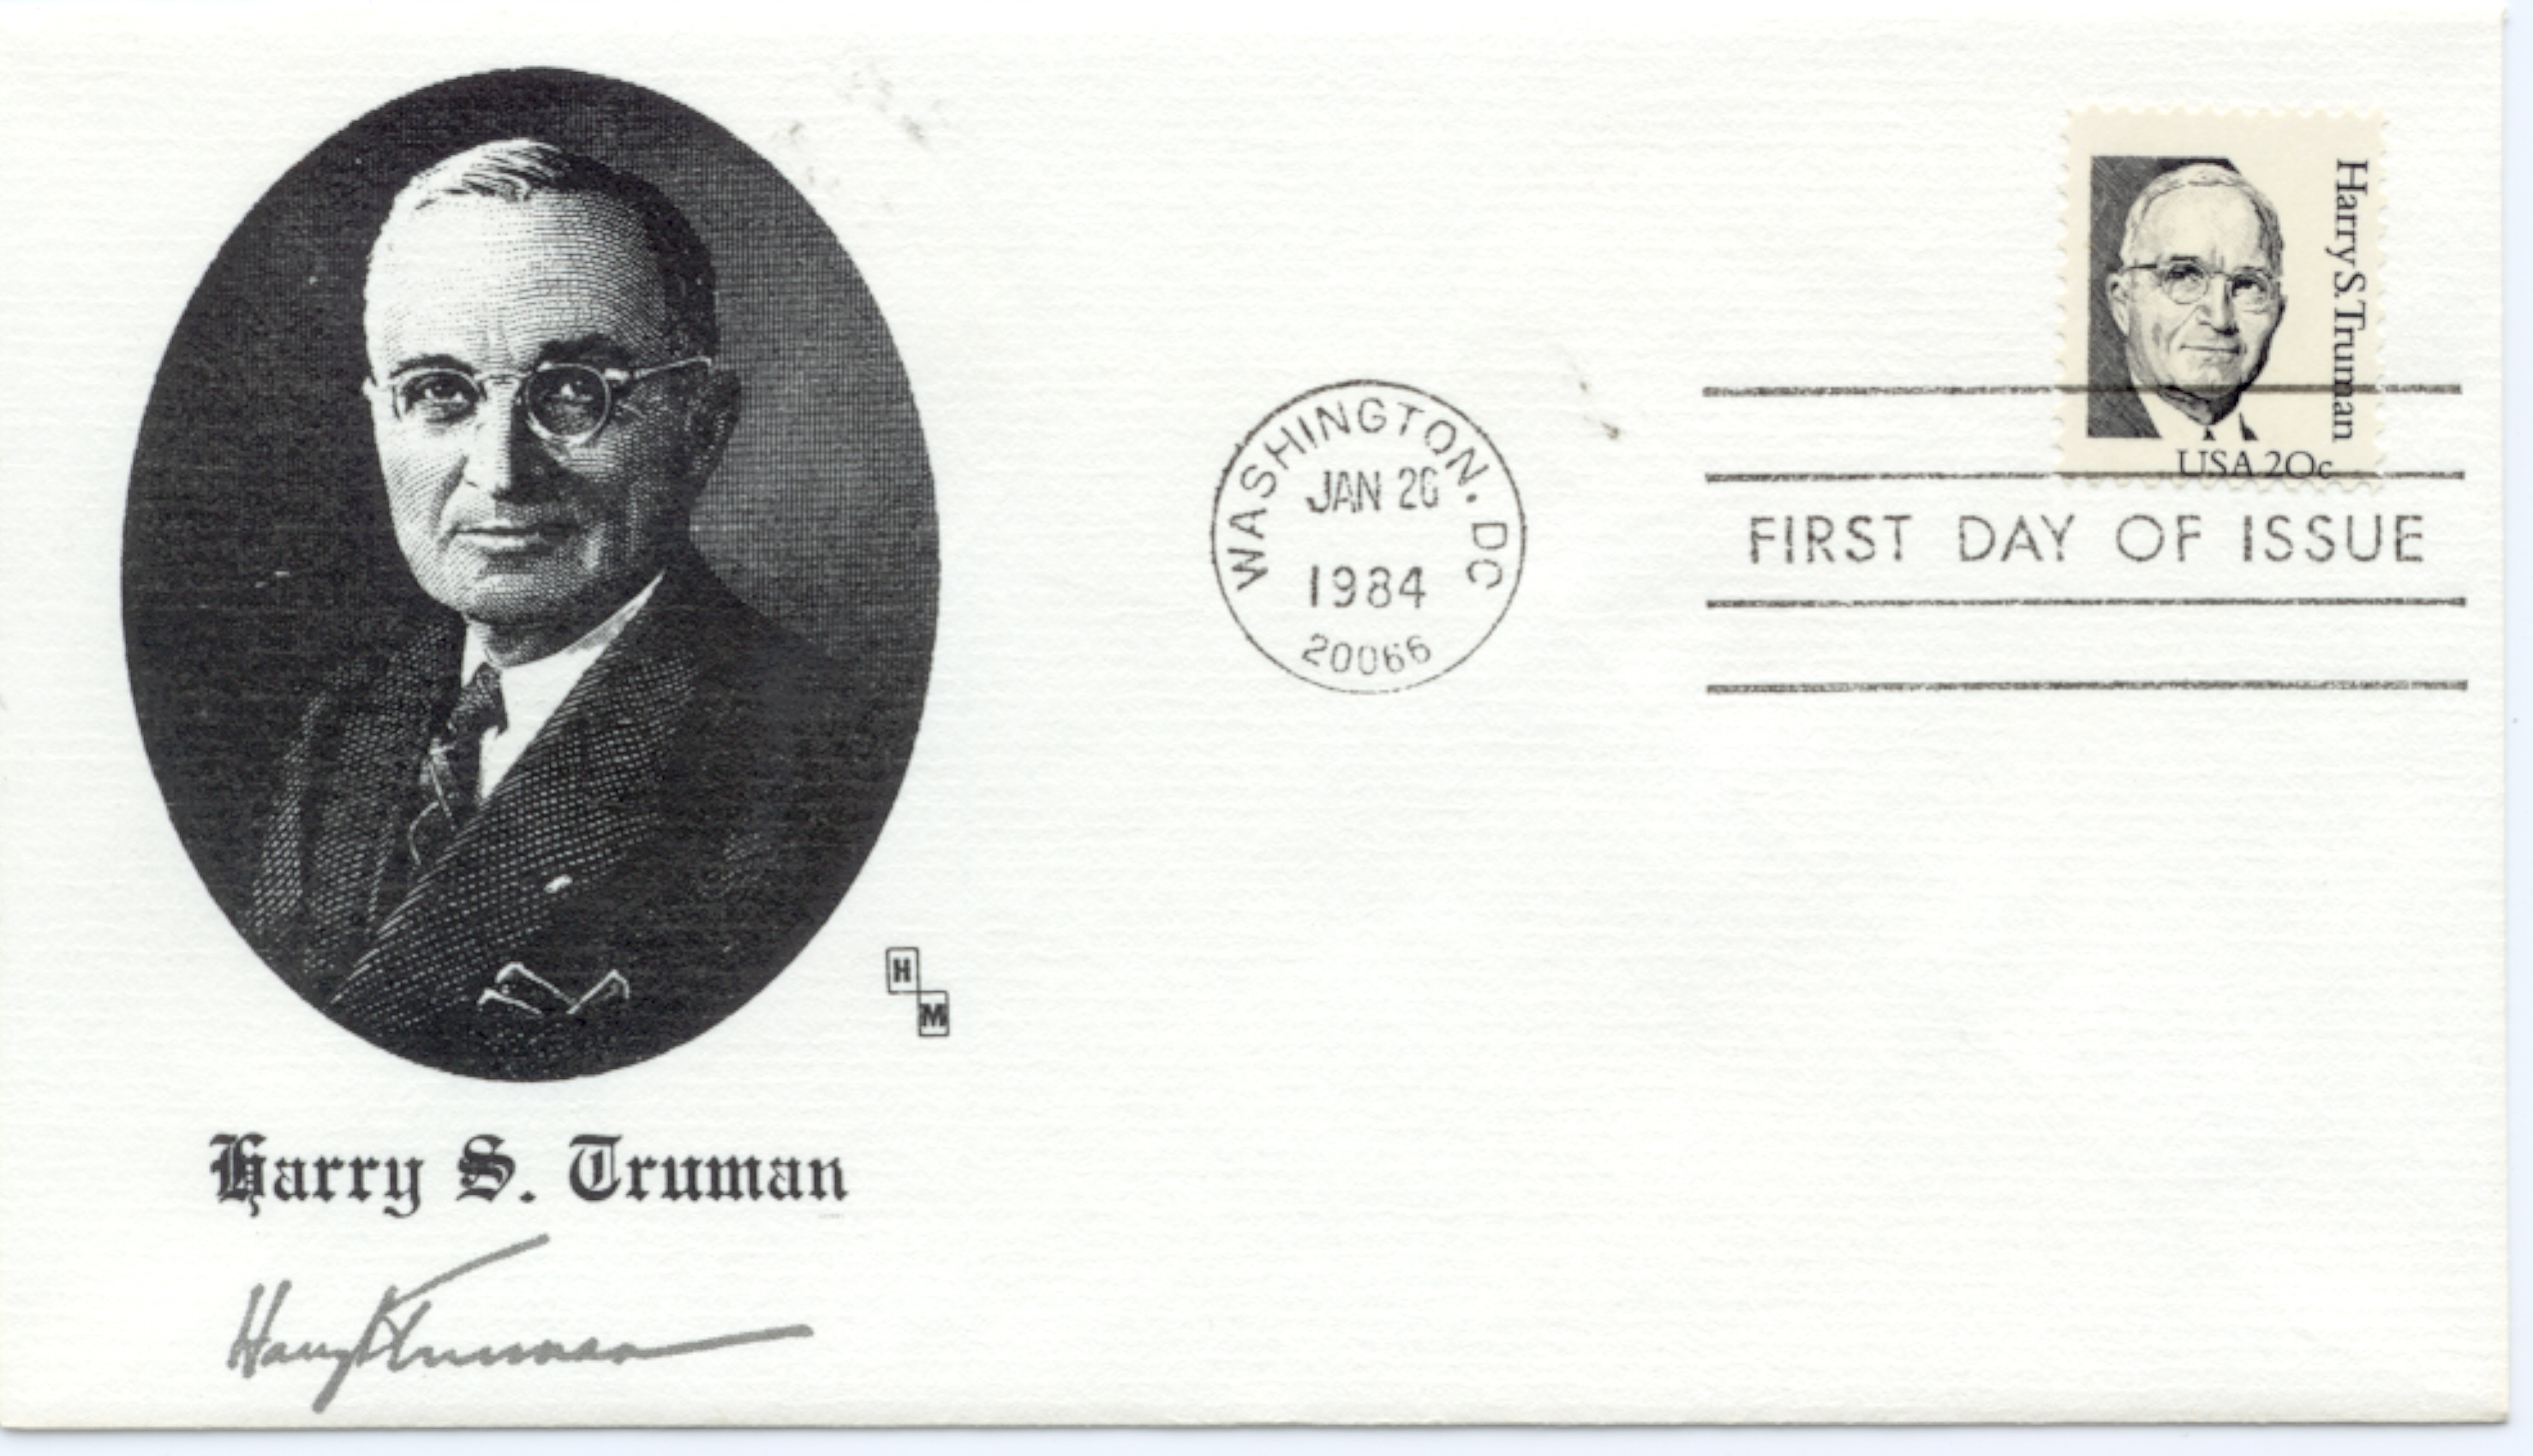 HST Definitive FDC #14